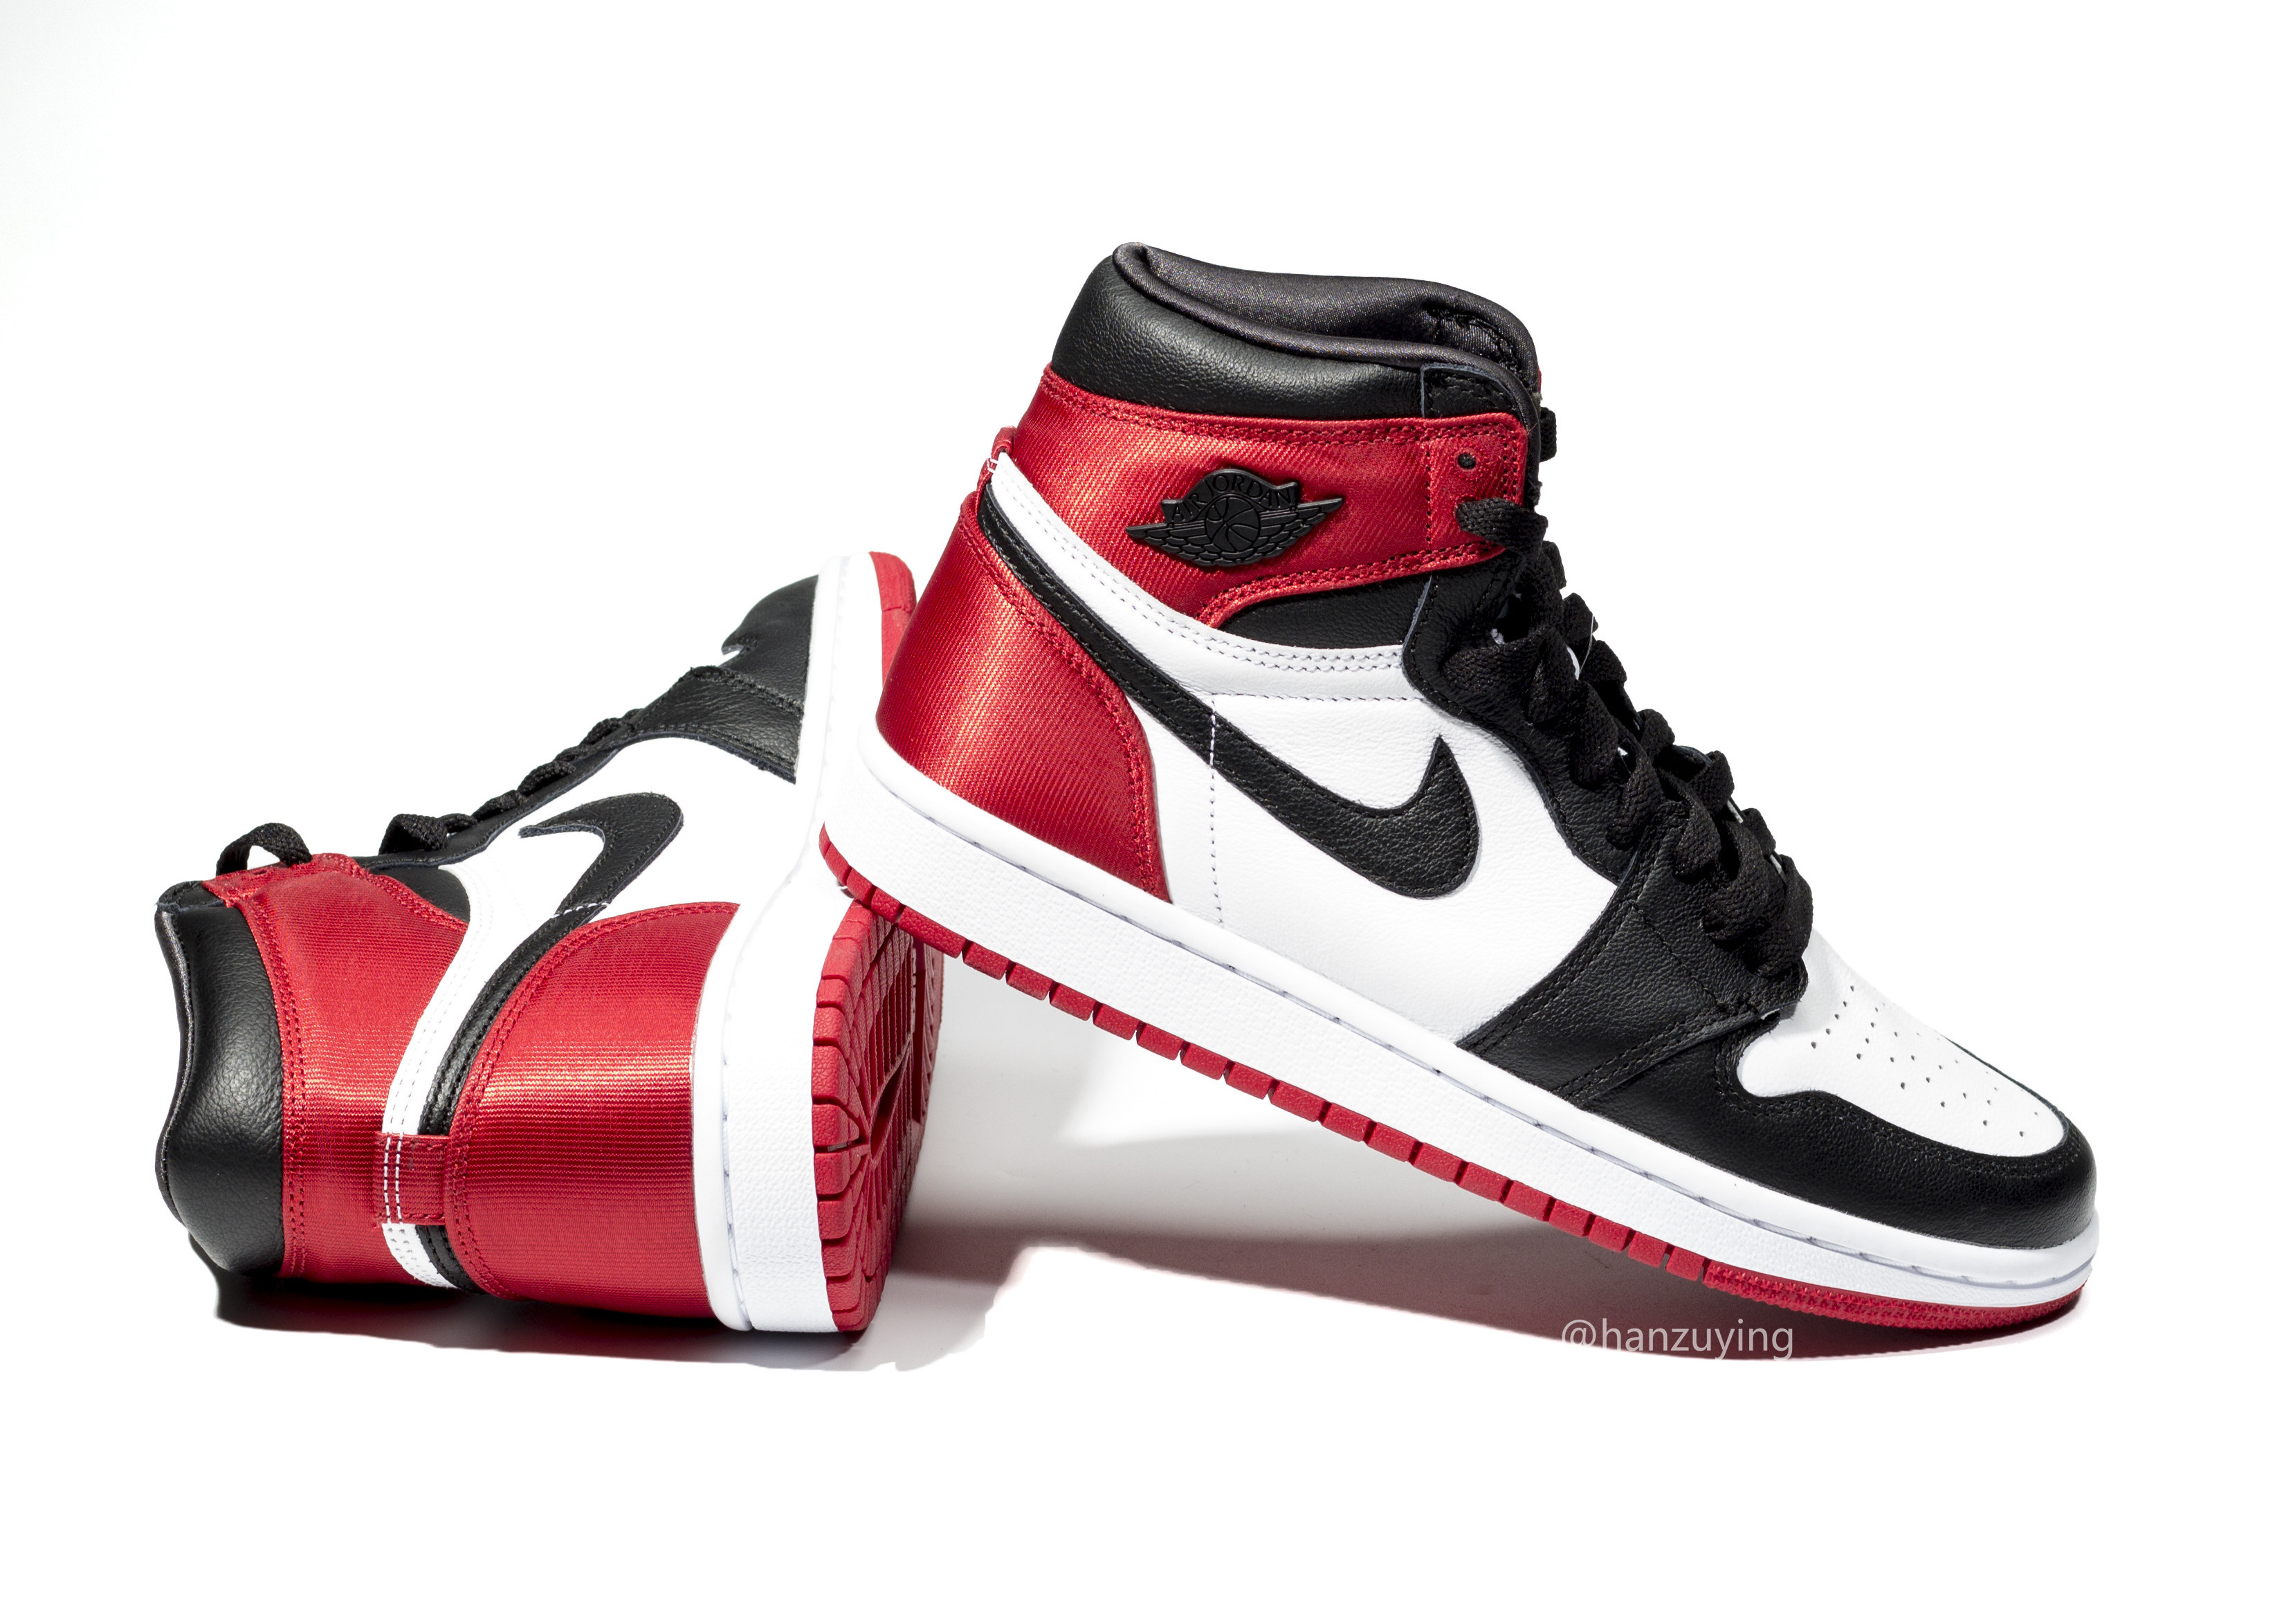 e241d571fd5 Air Jordan 1 Satin Black Toe Women's CD0461-016 Release Date - SBD